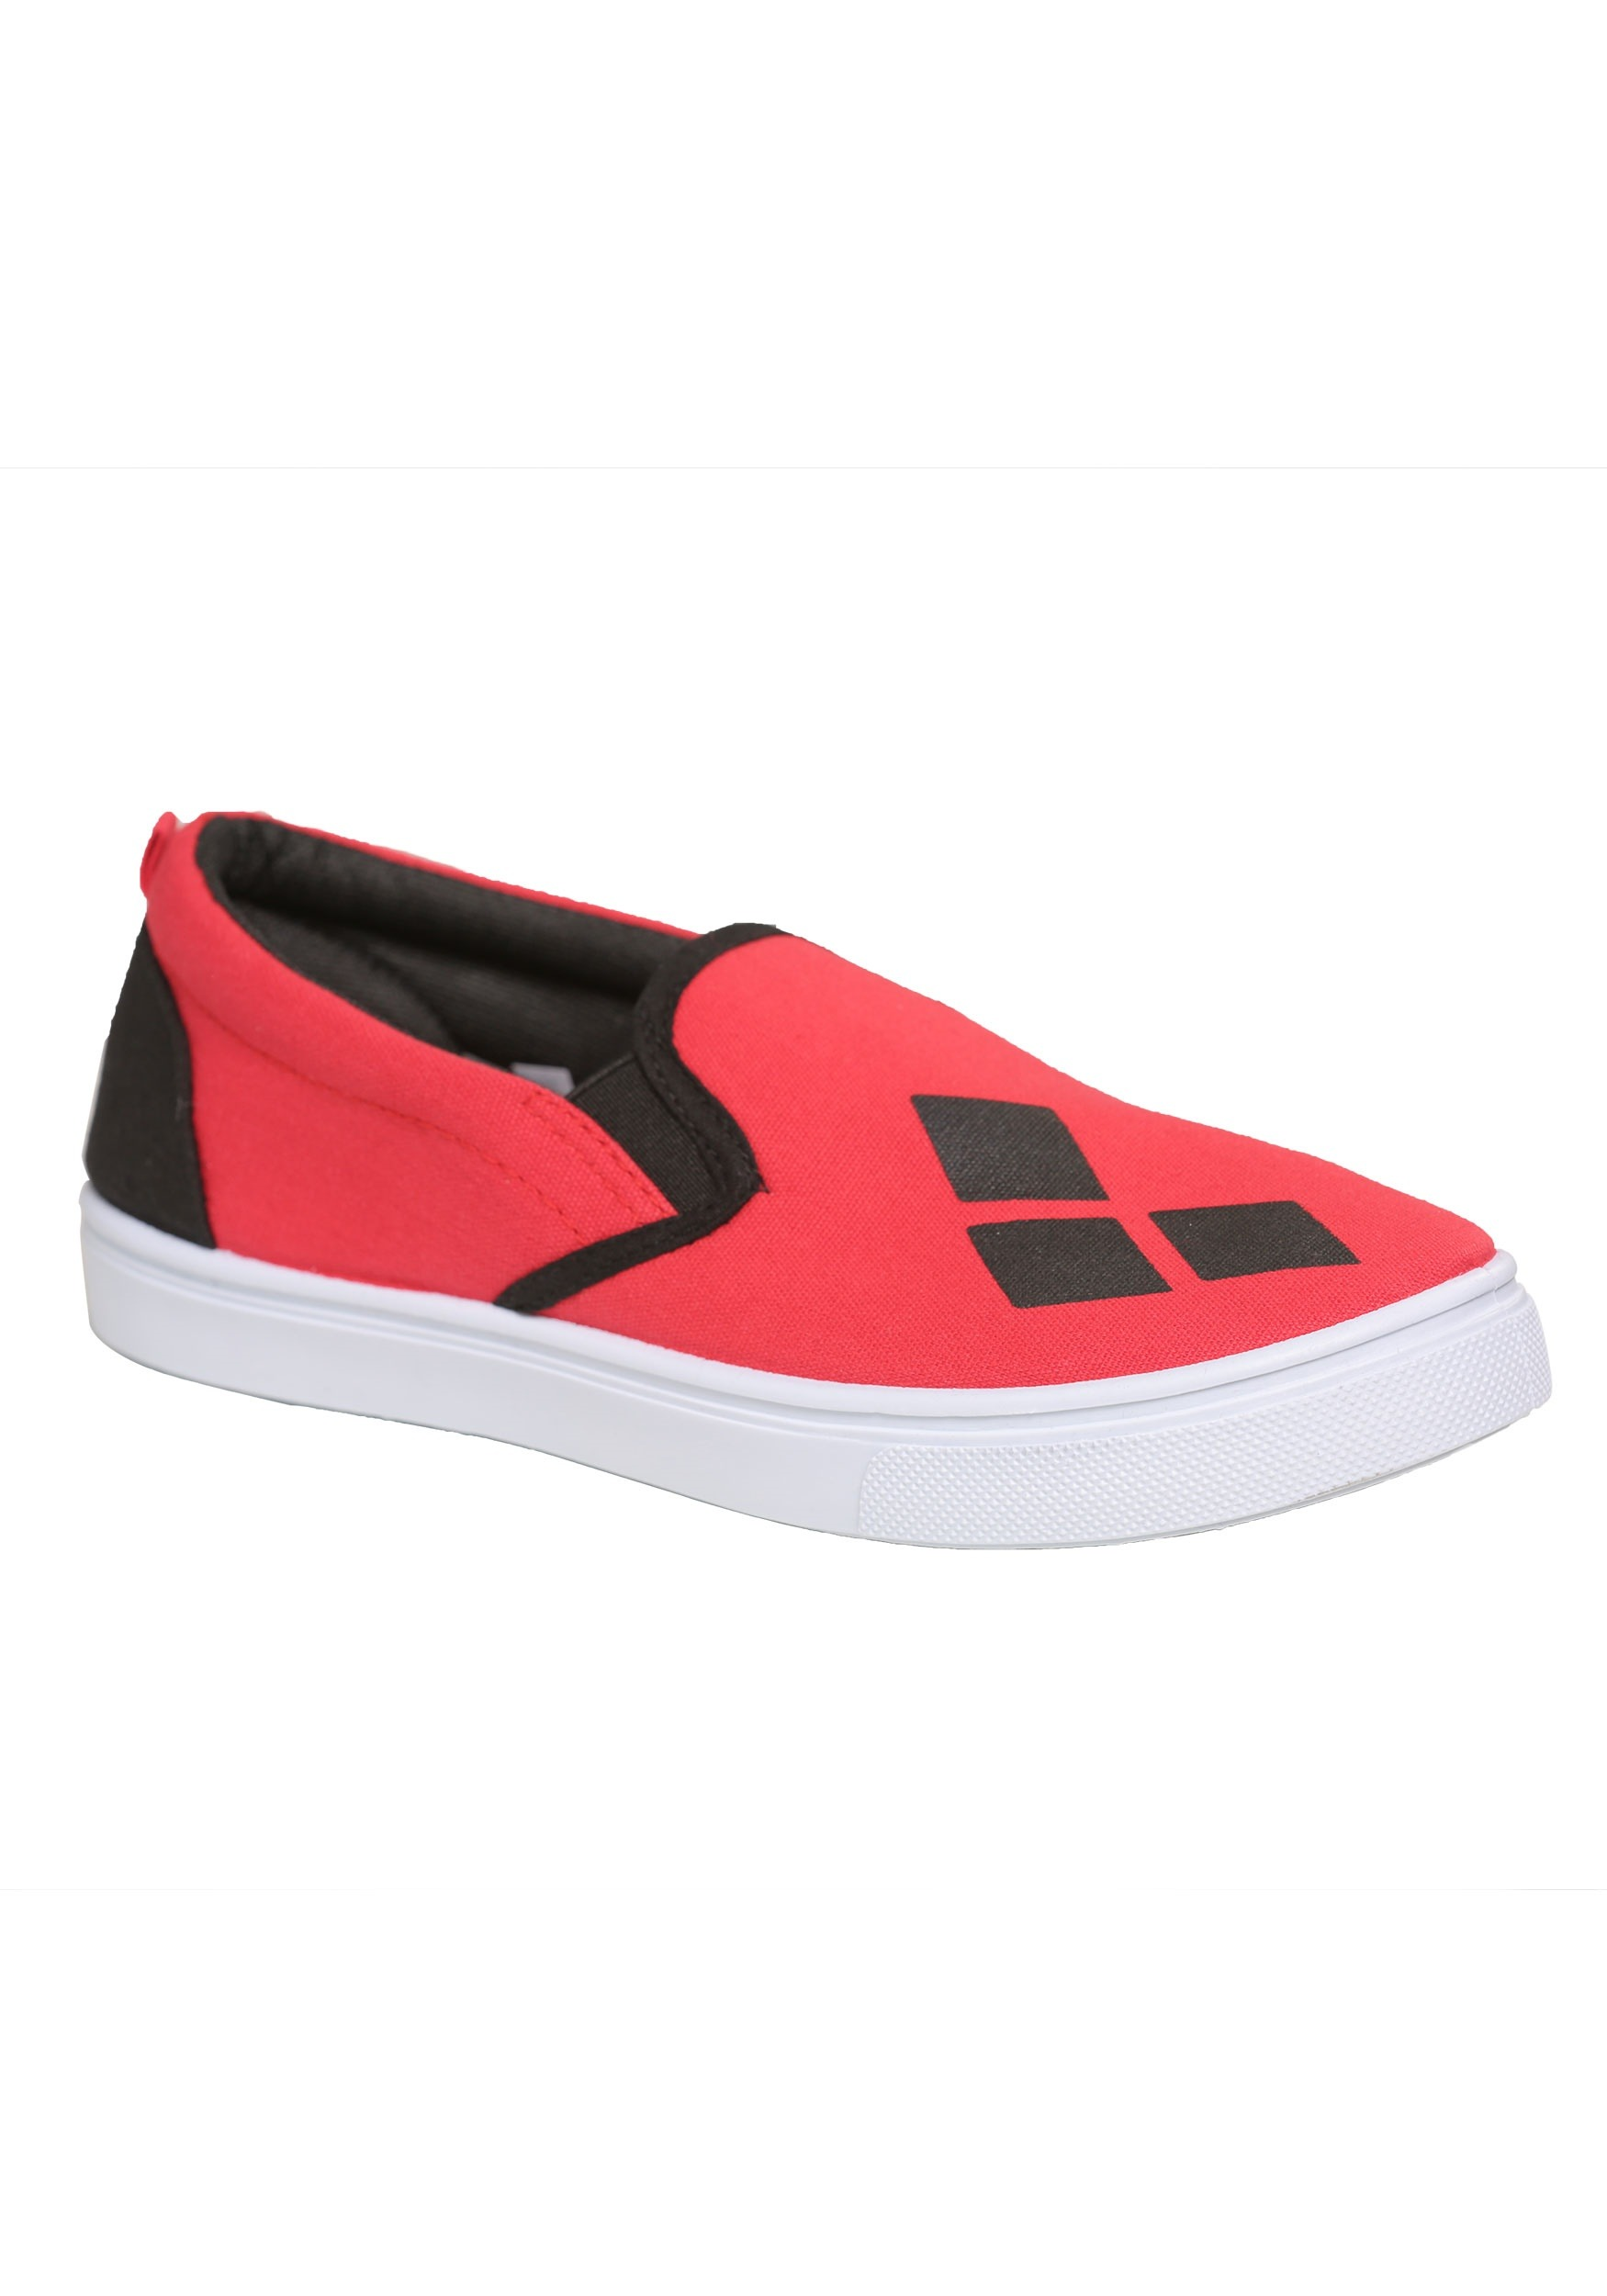 cc6dd9de968952 Harley Quinn Canvas Shoes for Women